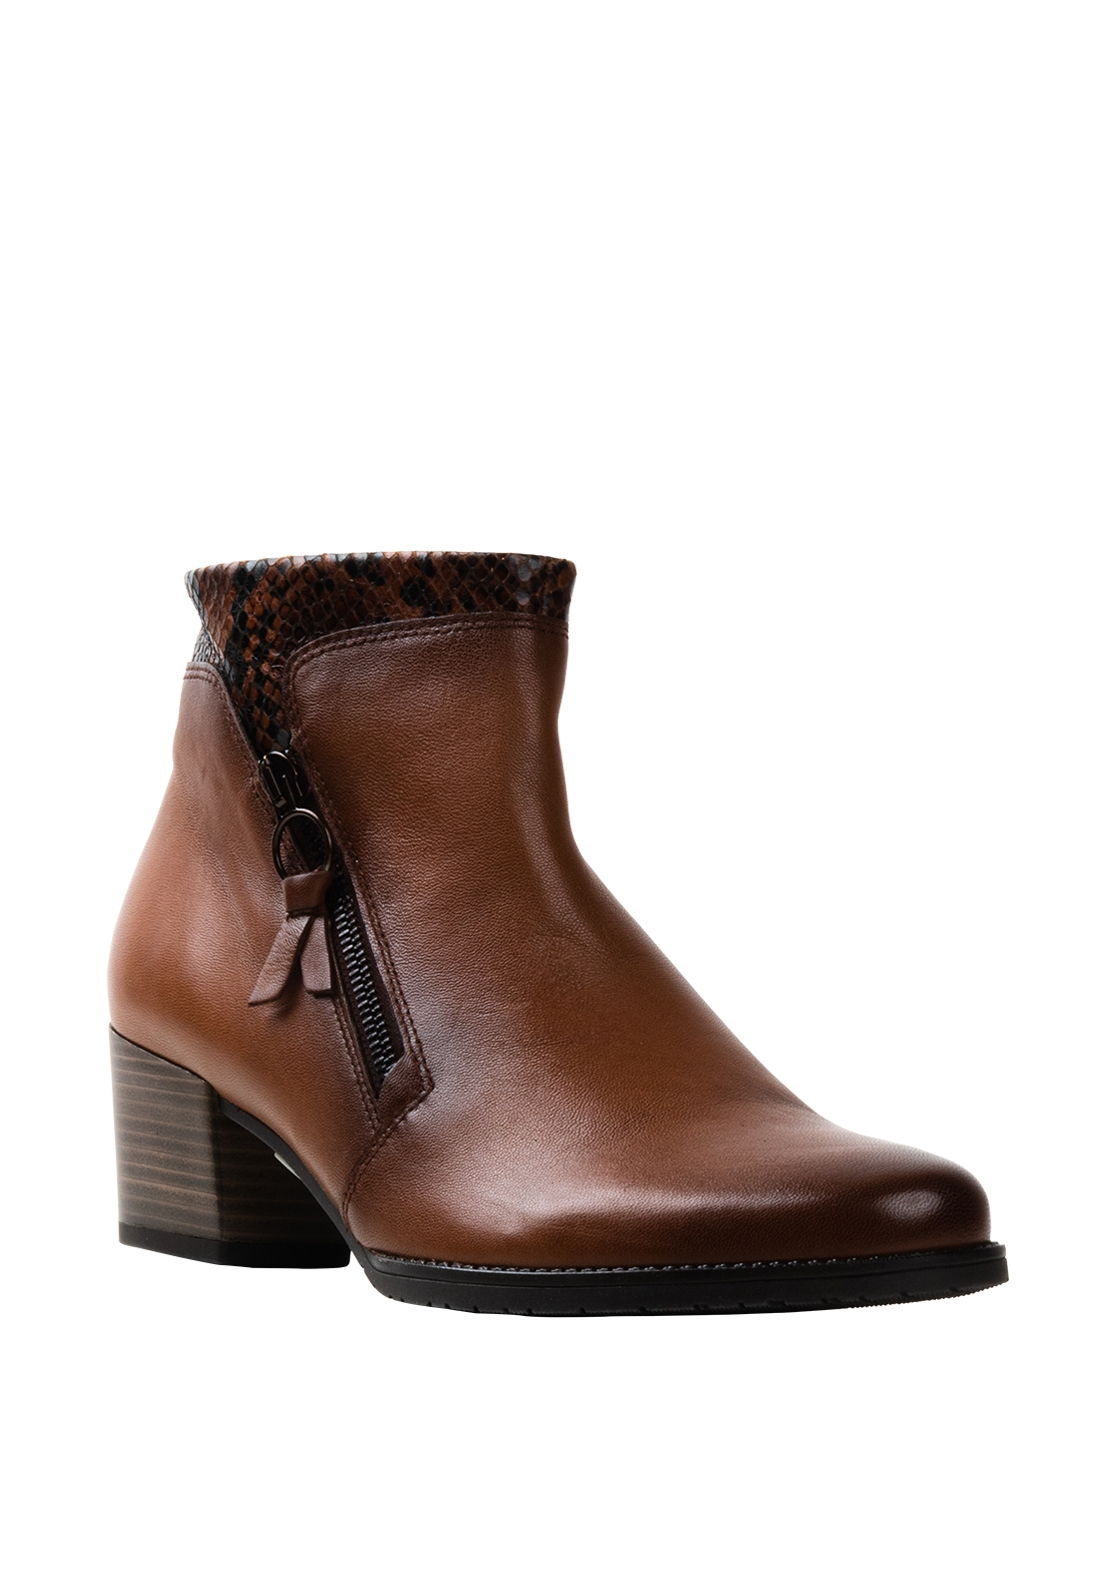 Gabor Comfort Leather G Wide Fit Reptile Cuff Boots, Brown